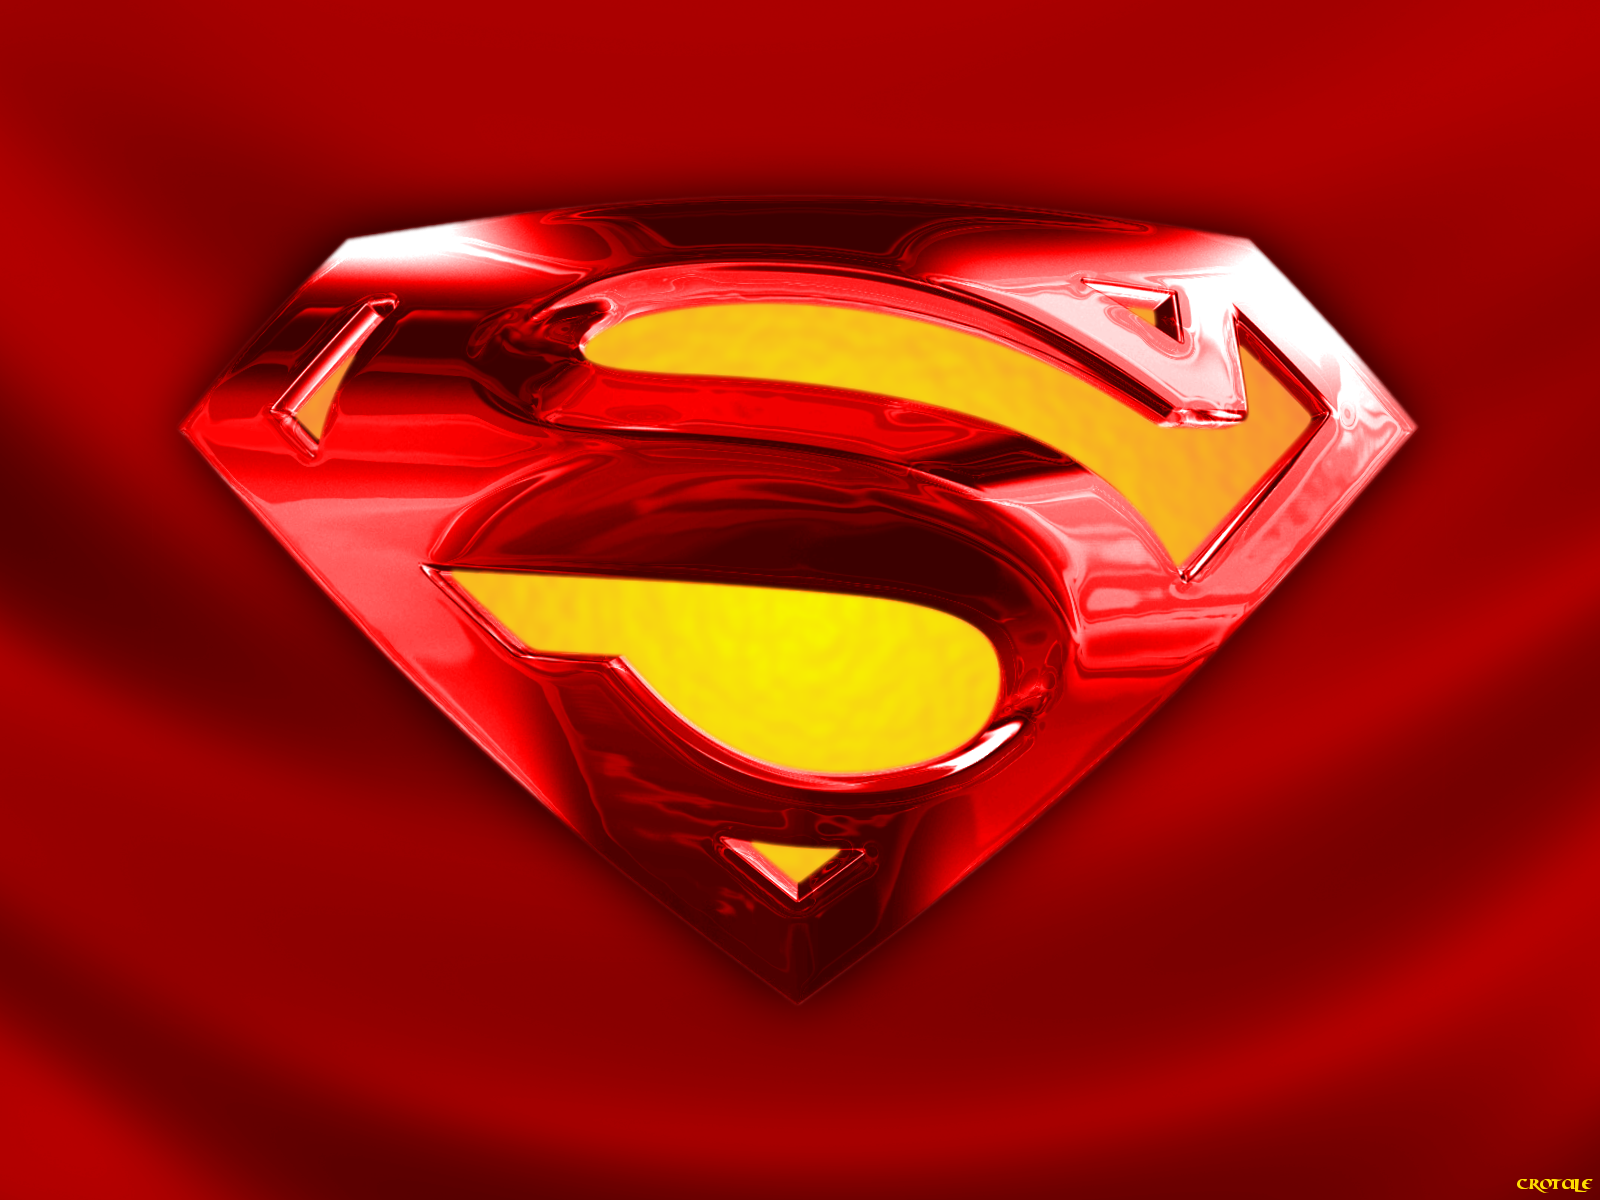 Superman Shield on red cape by Crotale 1600x1200